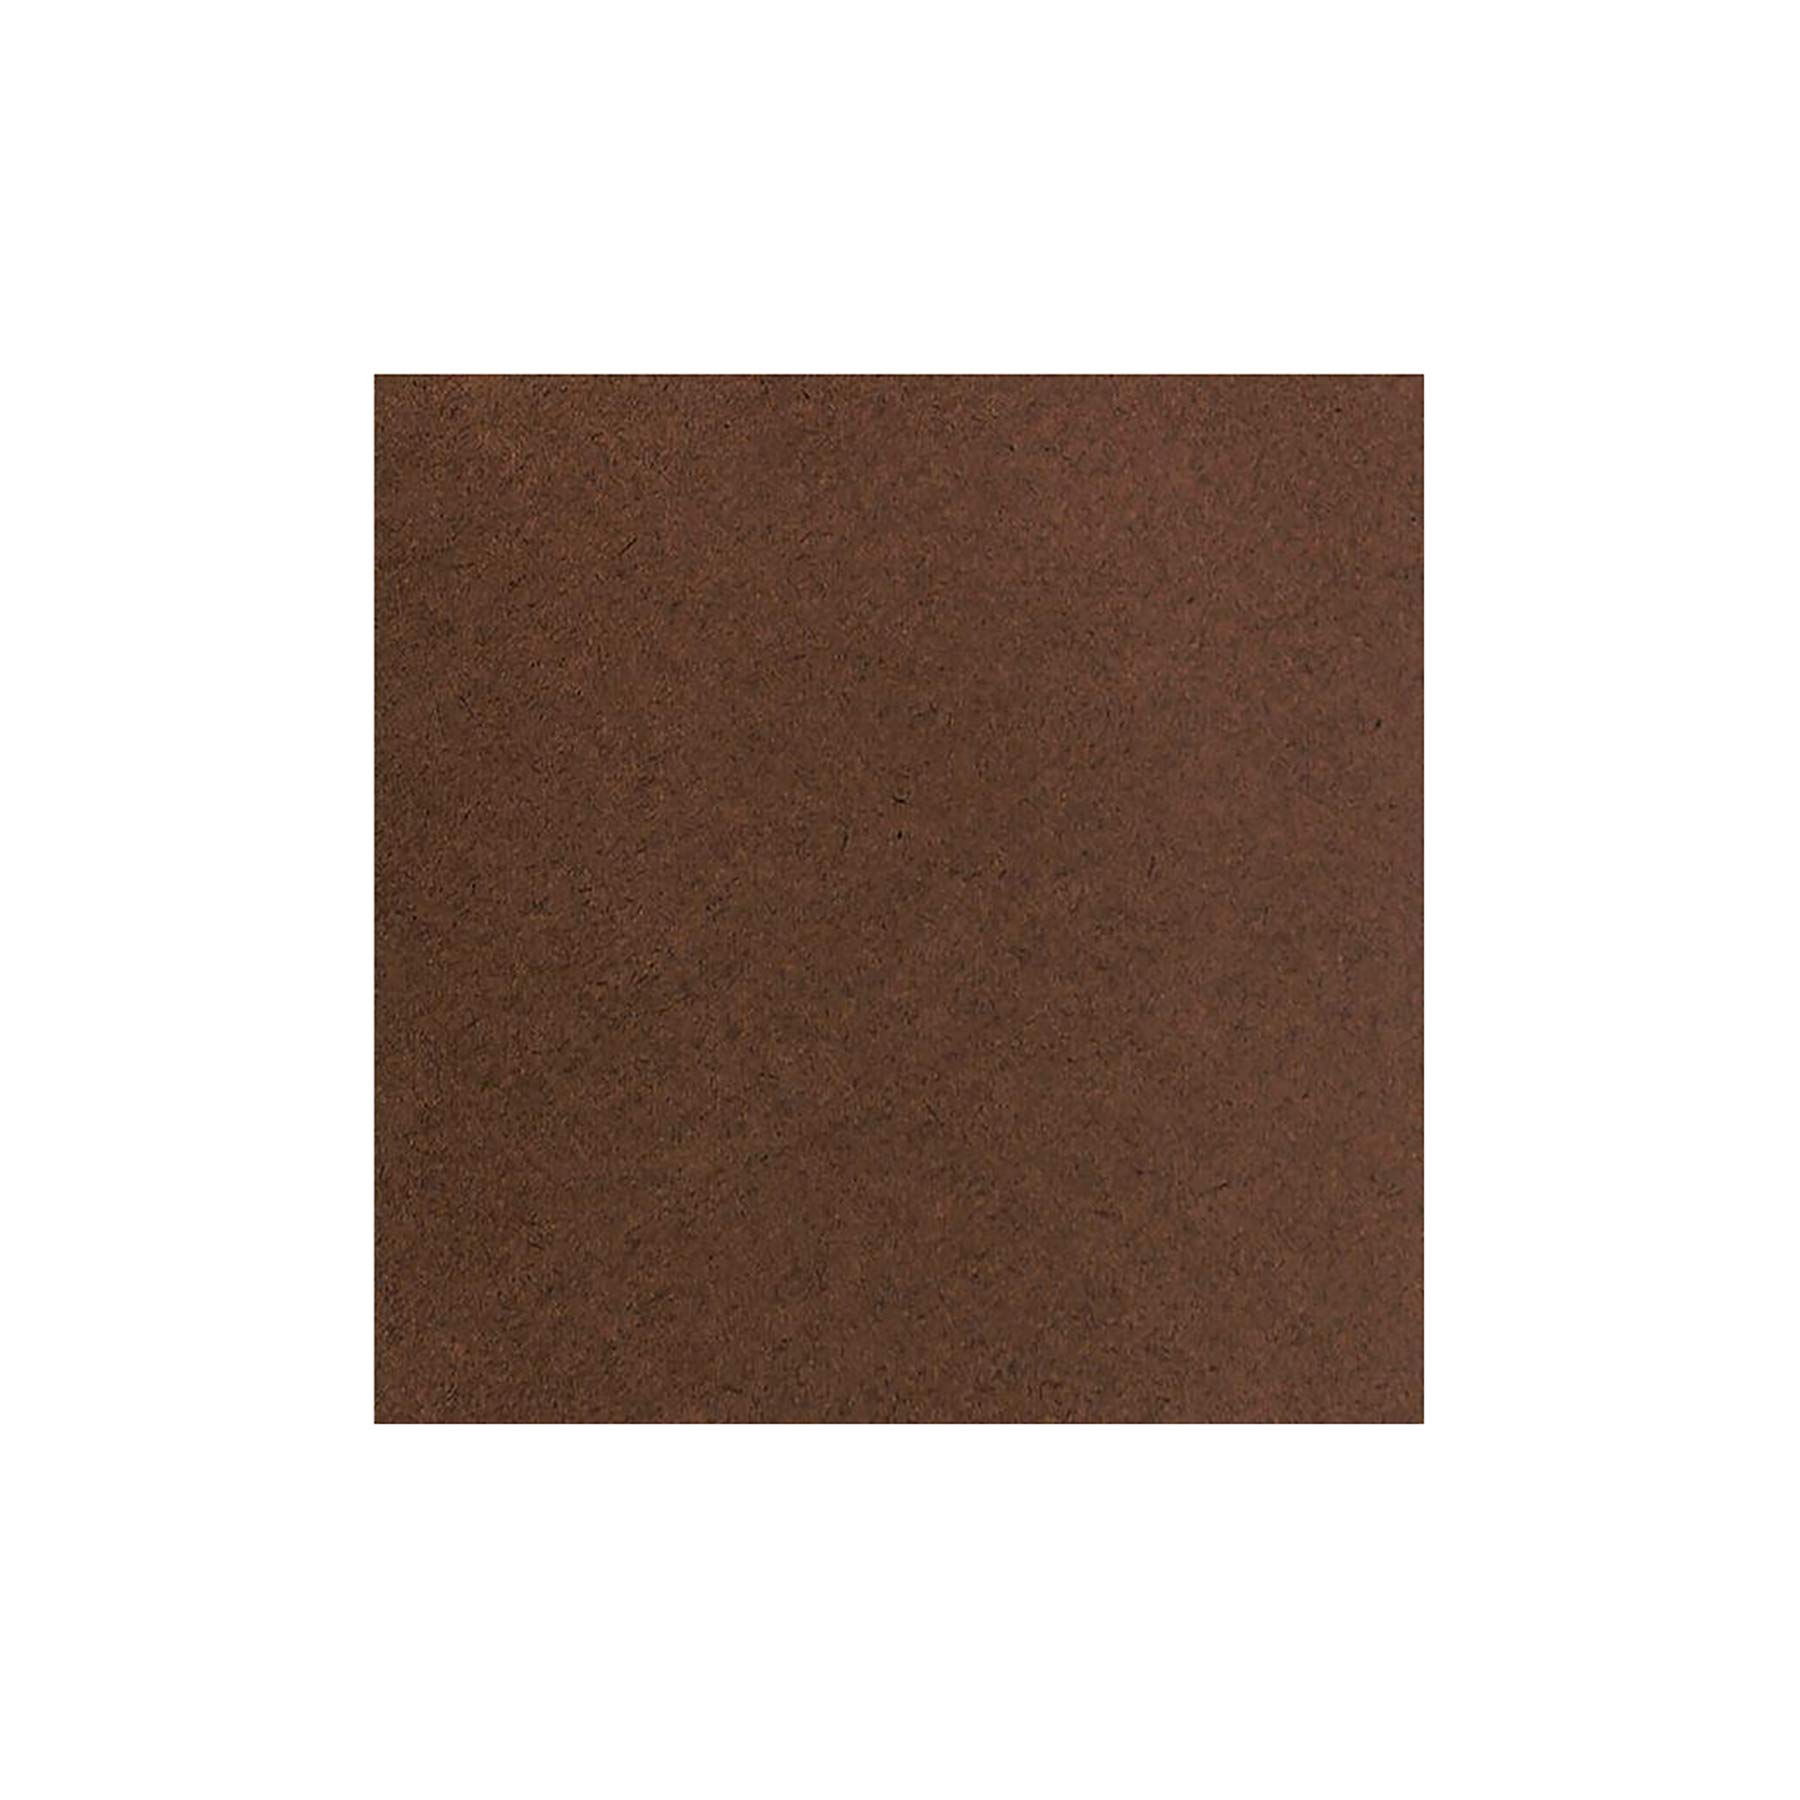 1/8 inch (3mm) 9'' X 9'' Hardboard Tempered Panel (36 Sheets) by DGwood